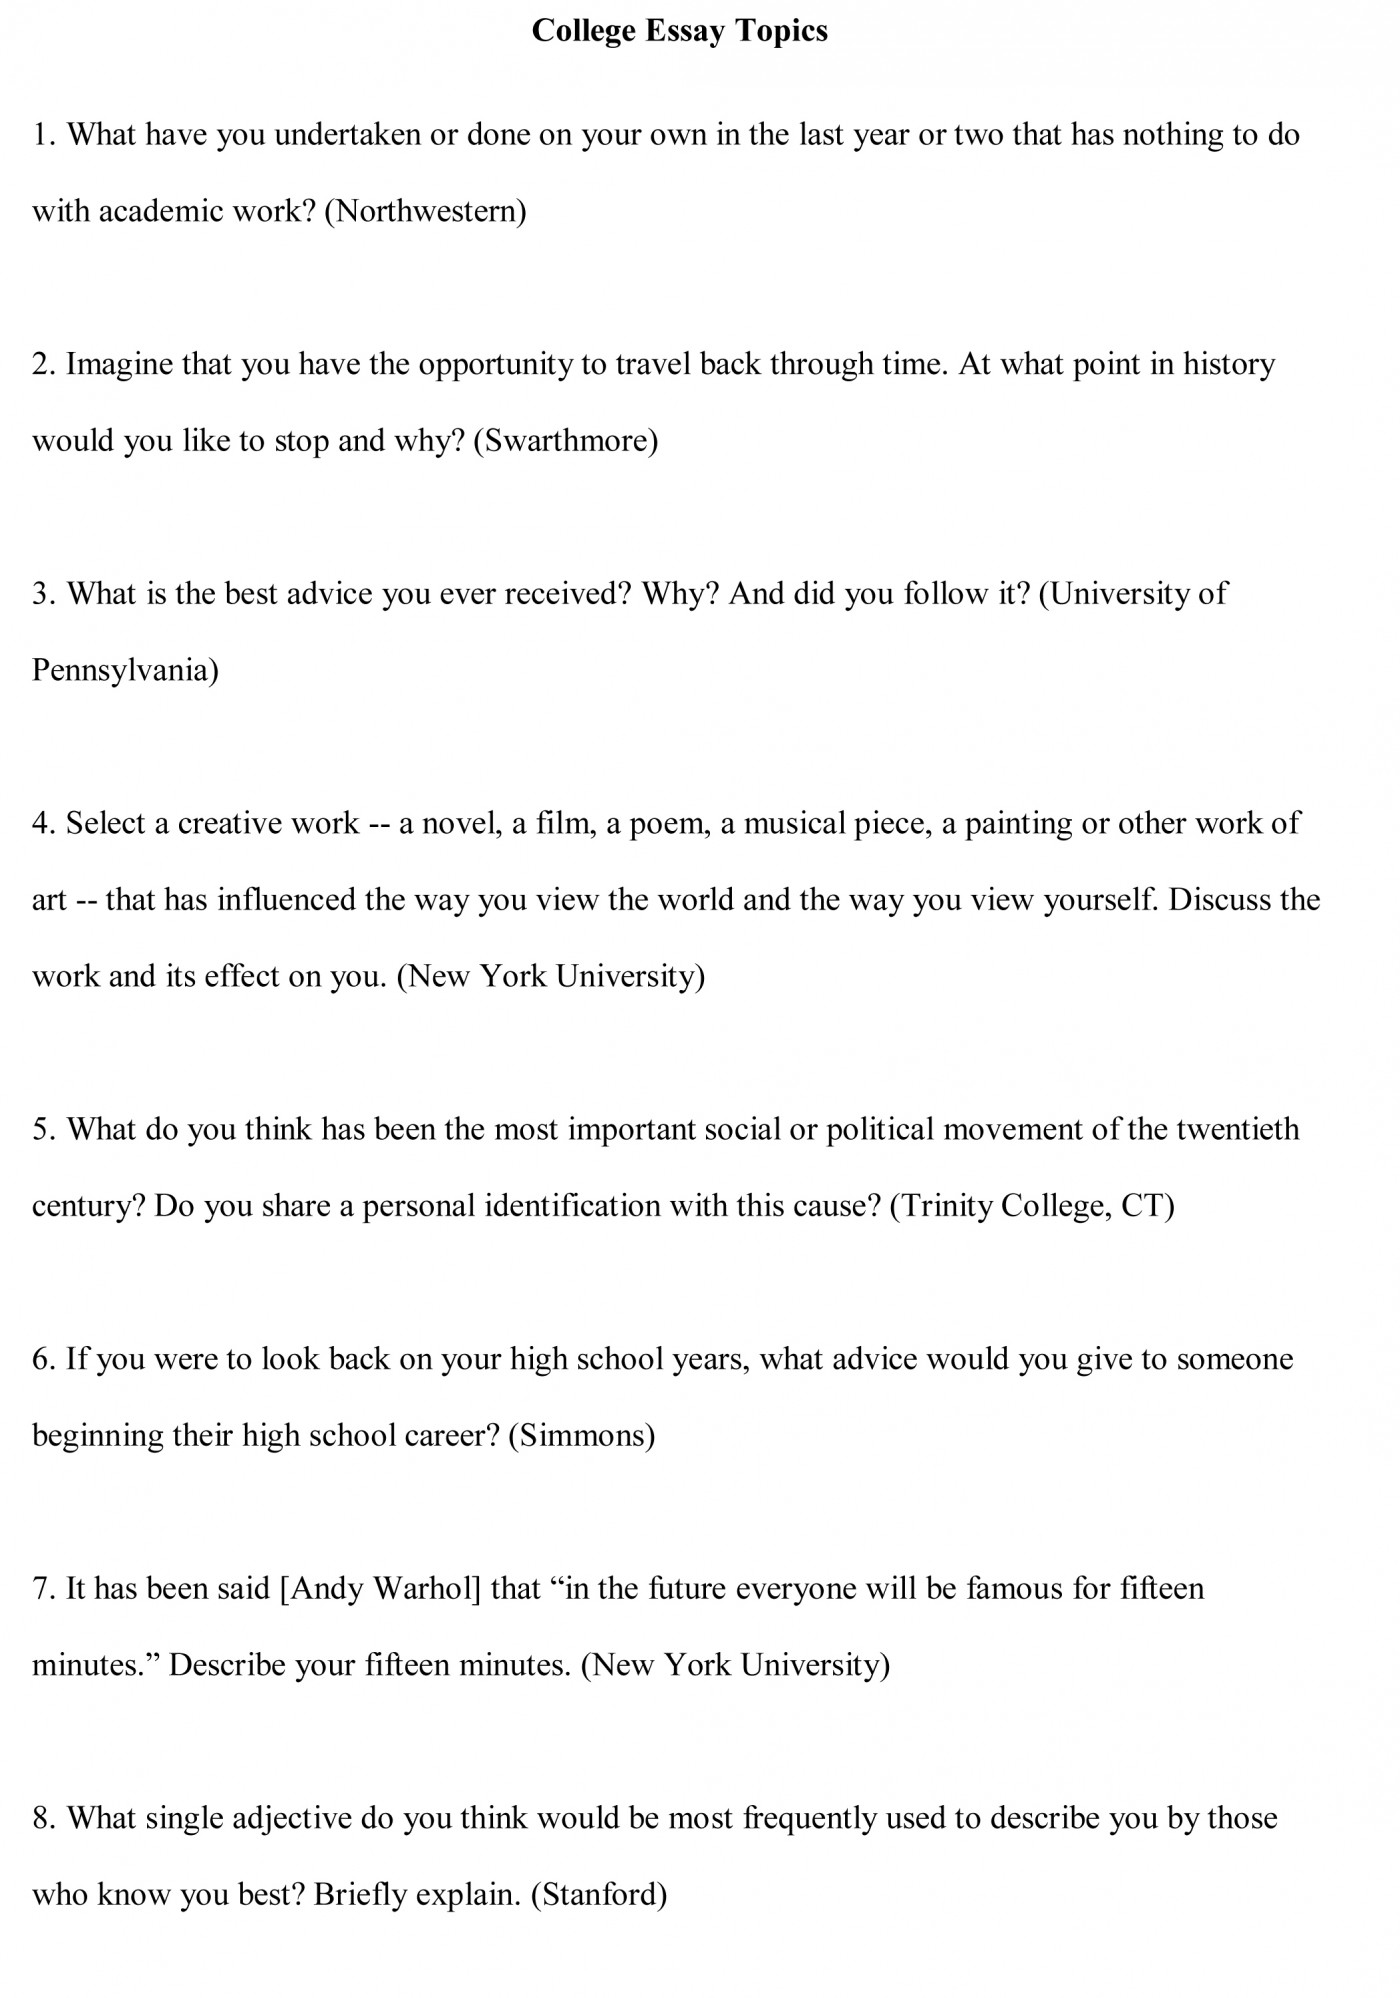 002 College Essay Topics Free Sample1cbu003d Top Failure Prompt Examples That Stand Out 2018 1400